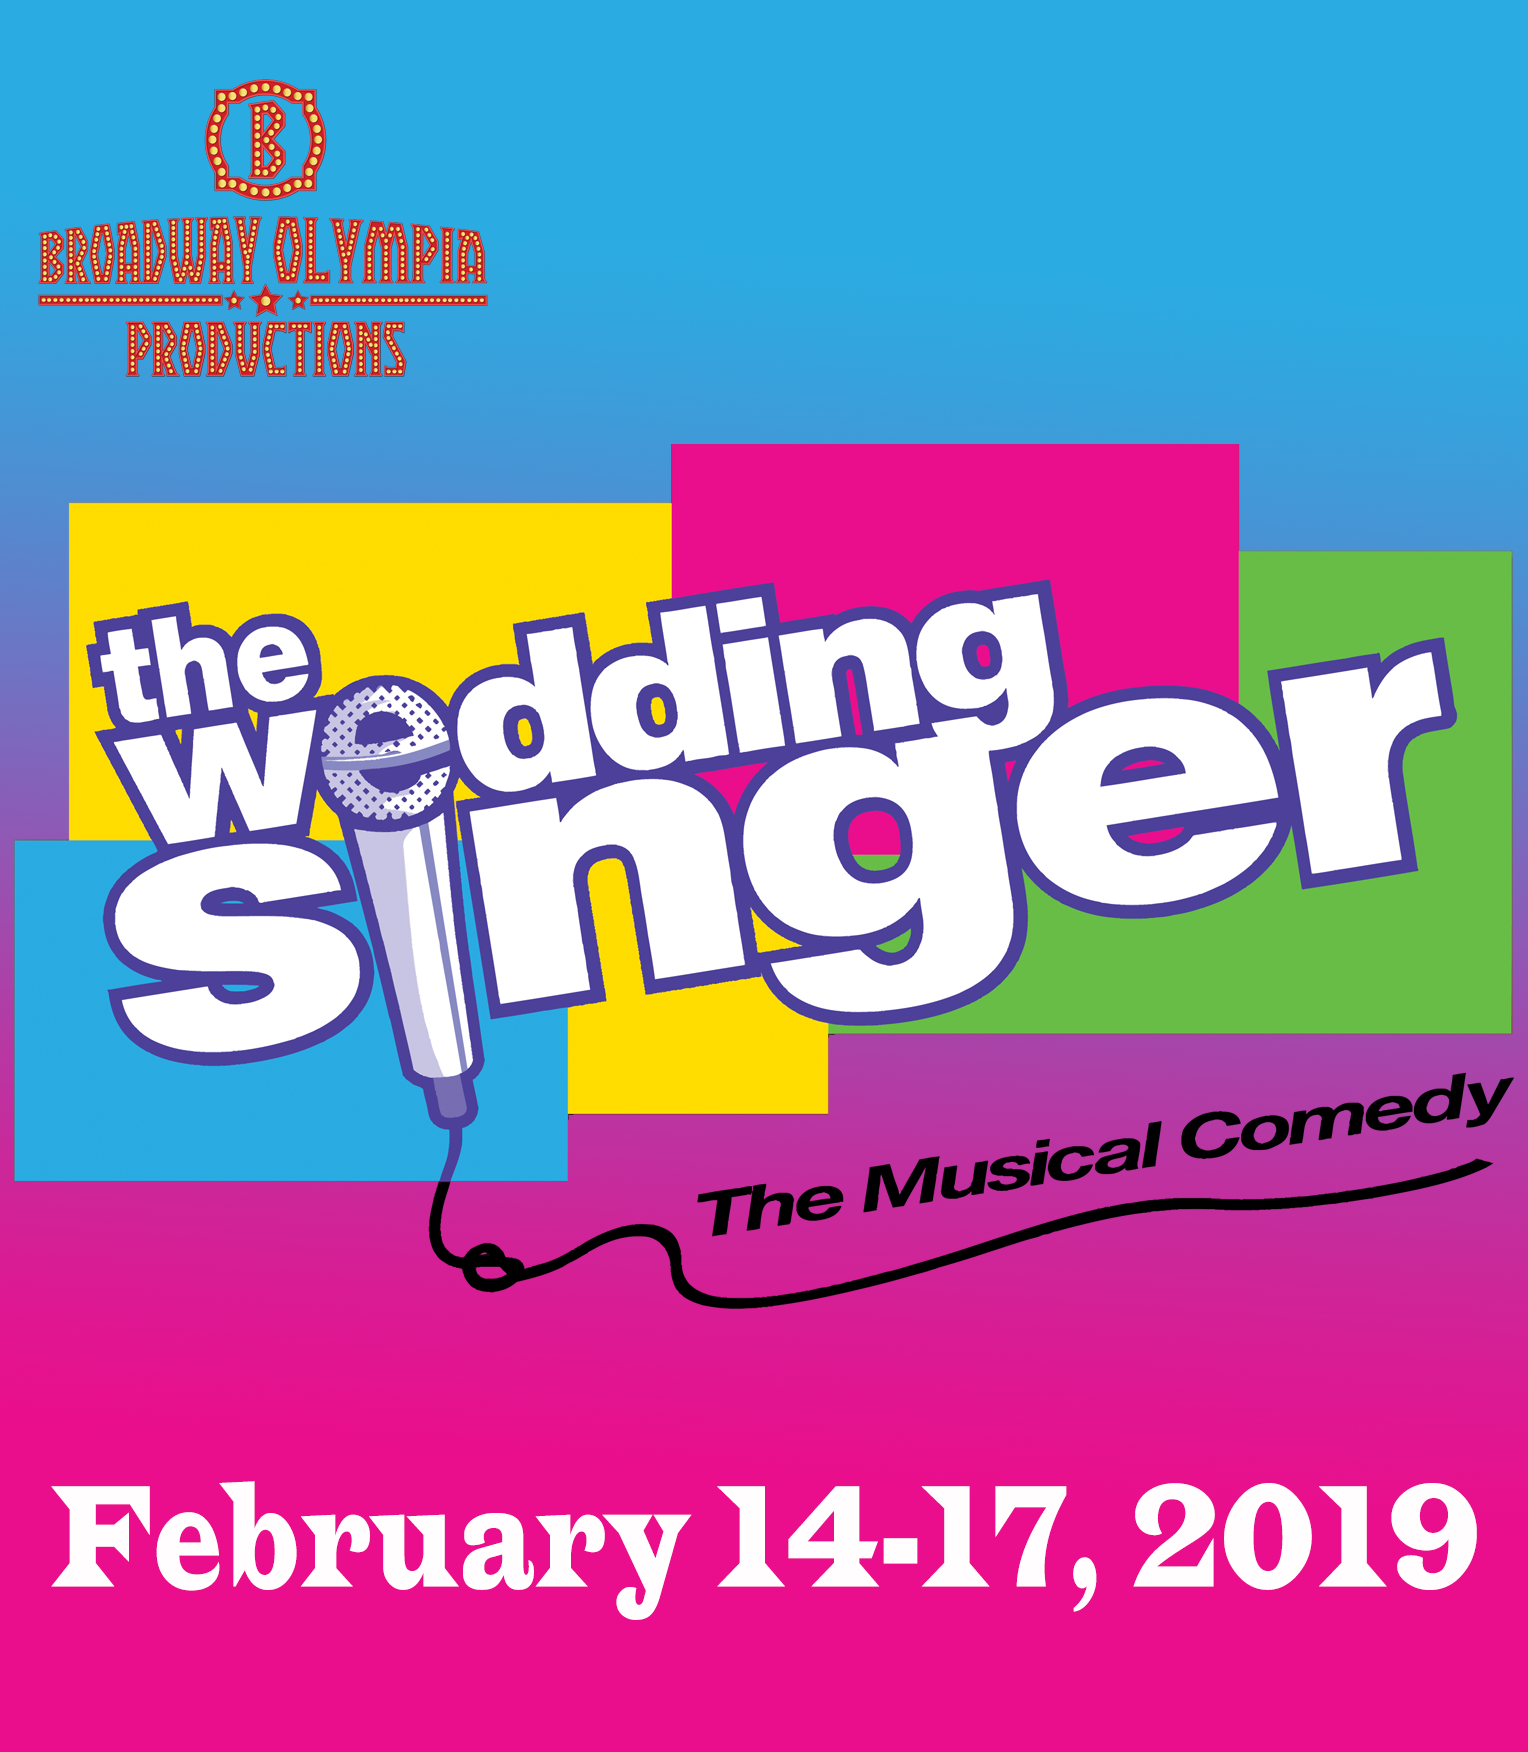 BROADWAY OLYMPIA PRESENTS THE WEDDING SINGER THE MUSICAL